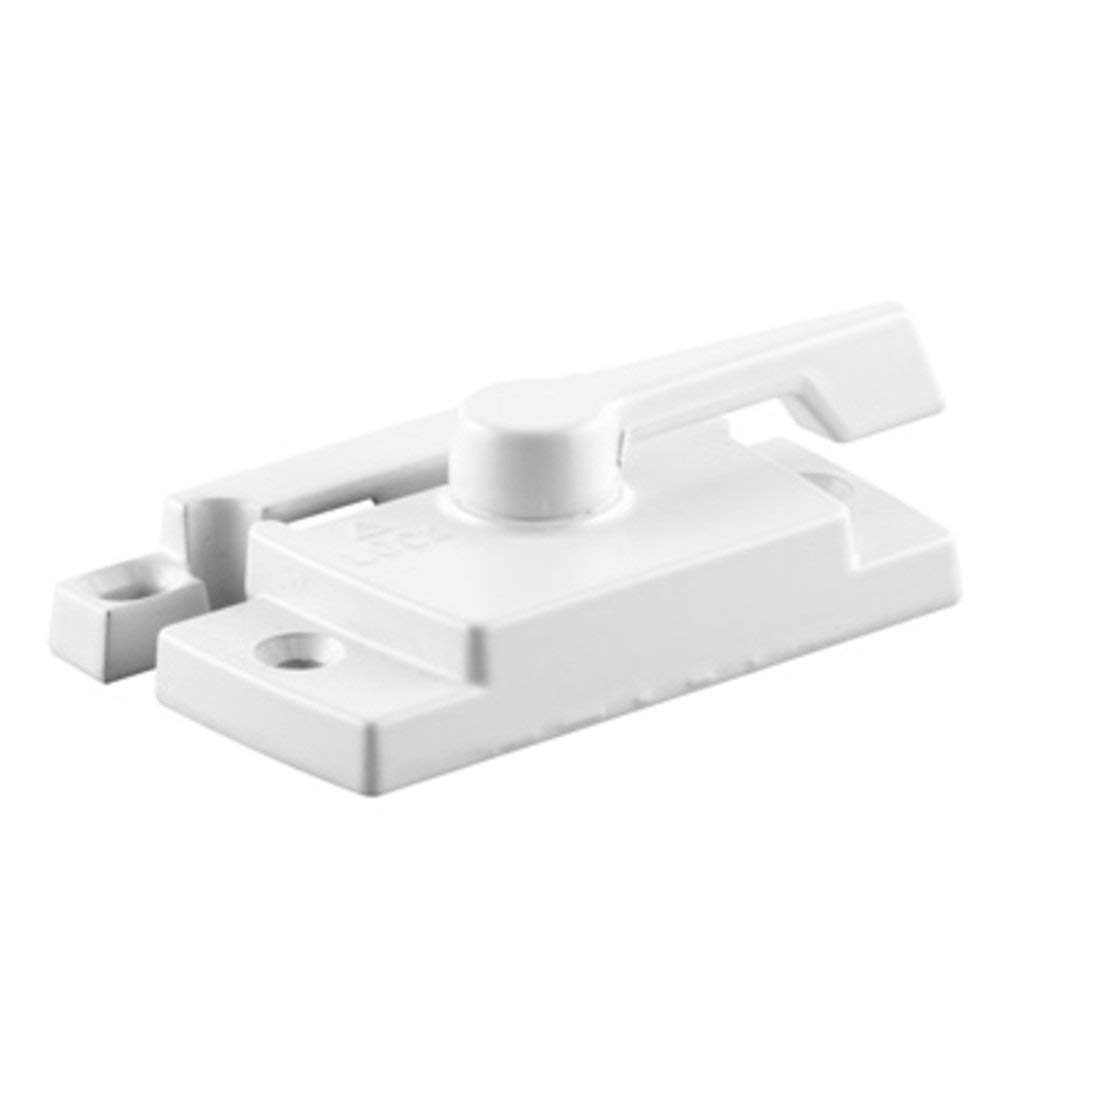 C.R. LAURENCE TH23087 CRL White Sash Lock With Lugs- 11/16 Backset 2-1/16 Mounting Holes by C.R. Laurence